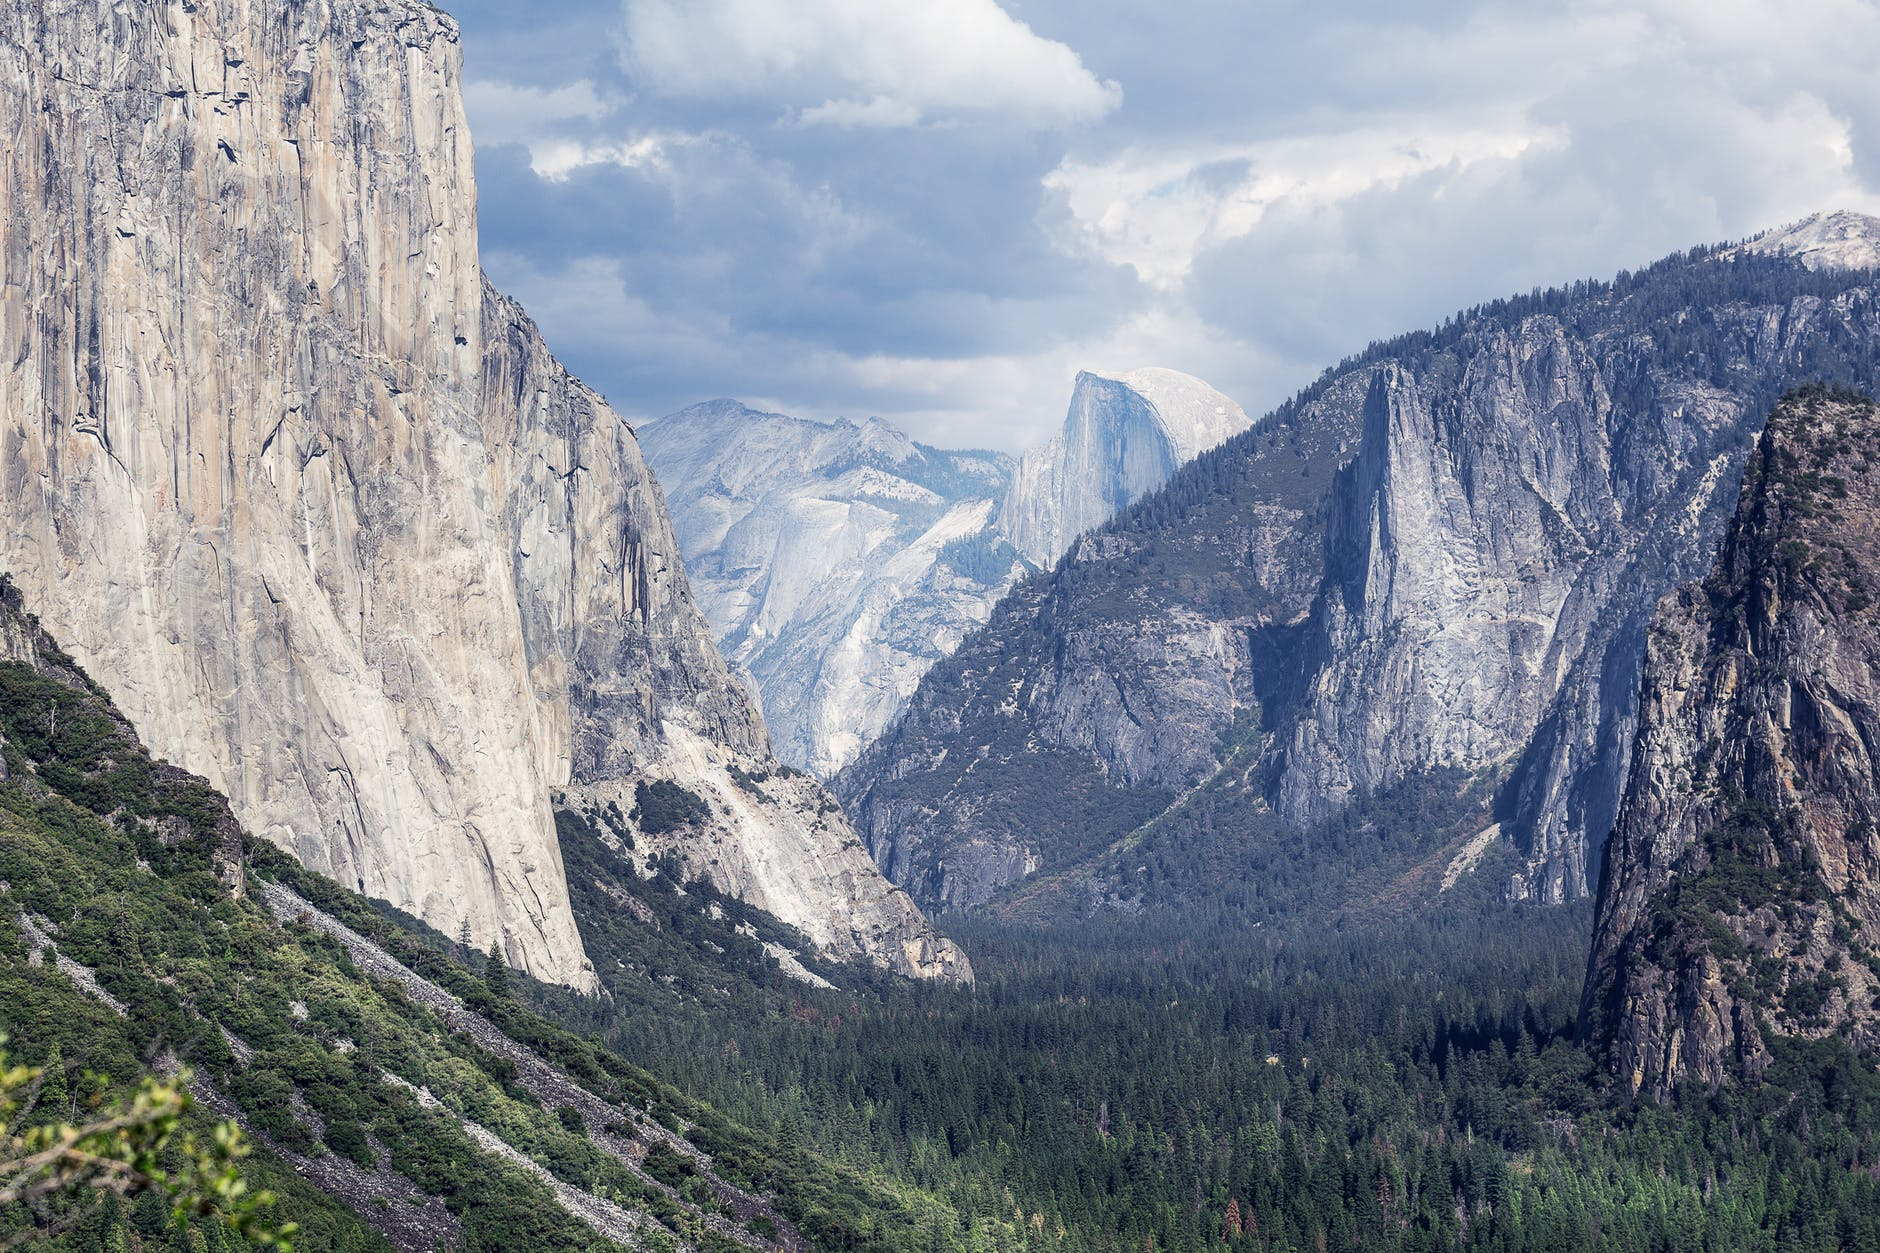 Here's what Donald Trump has to say about Yosemite National Park